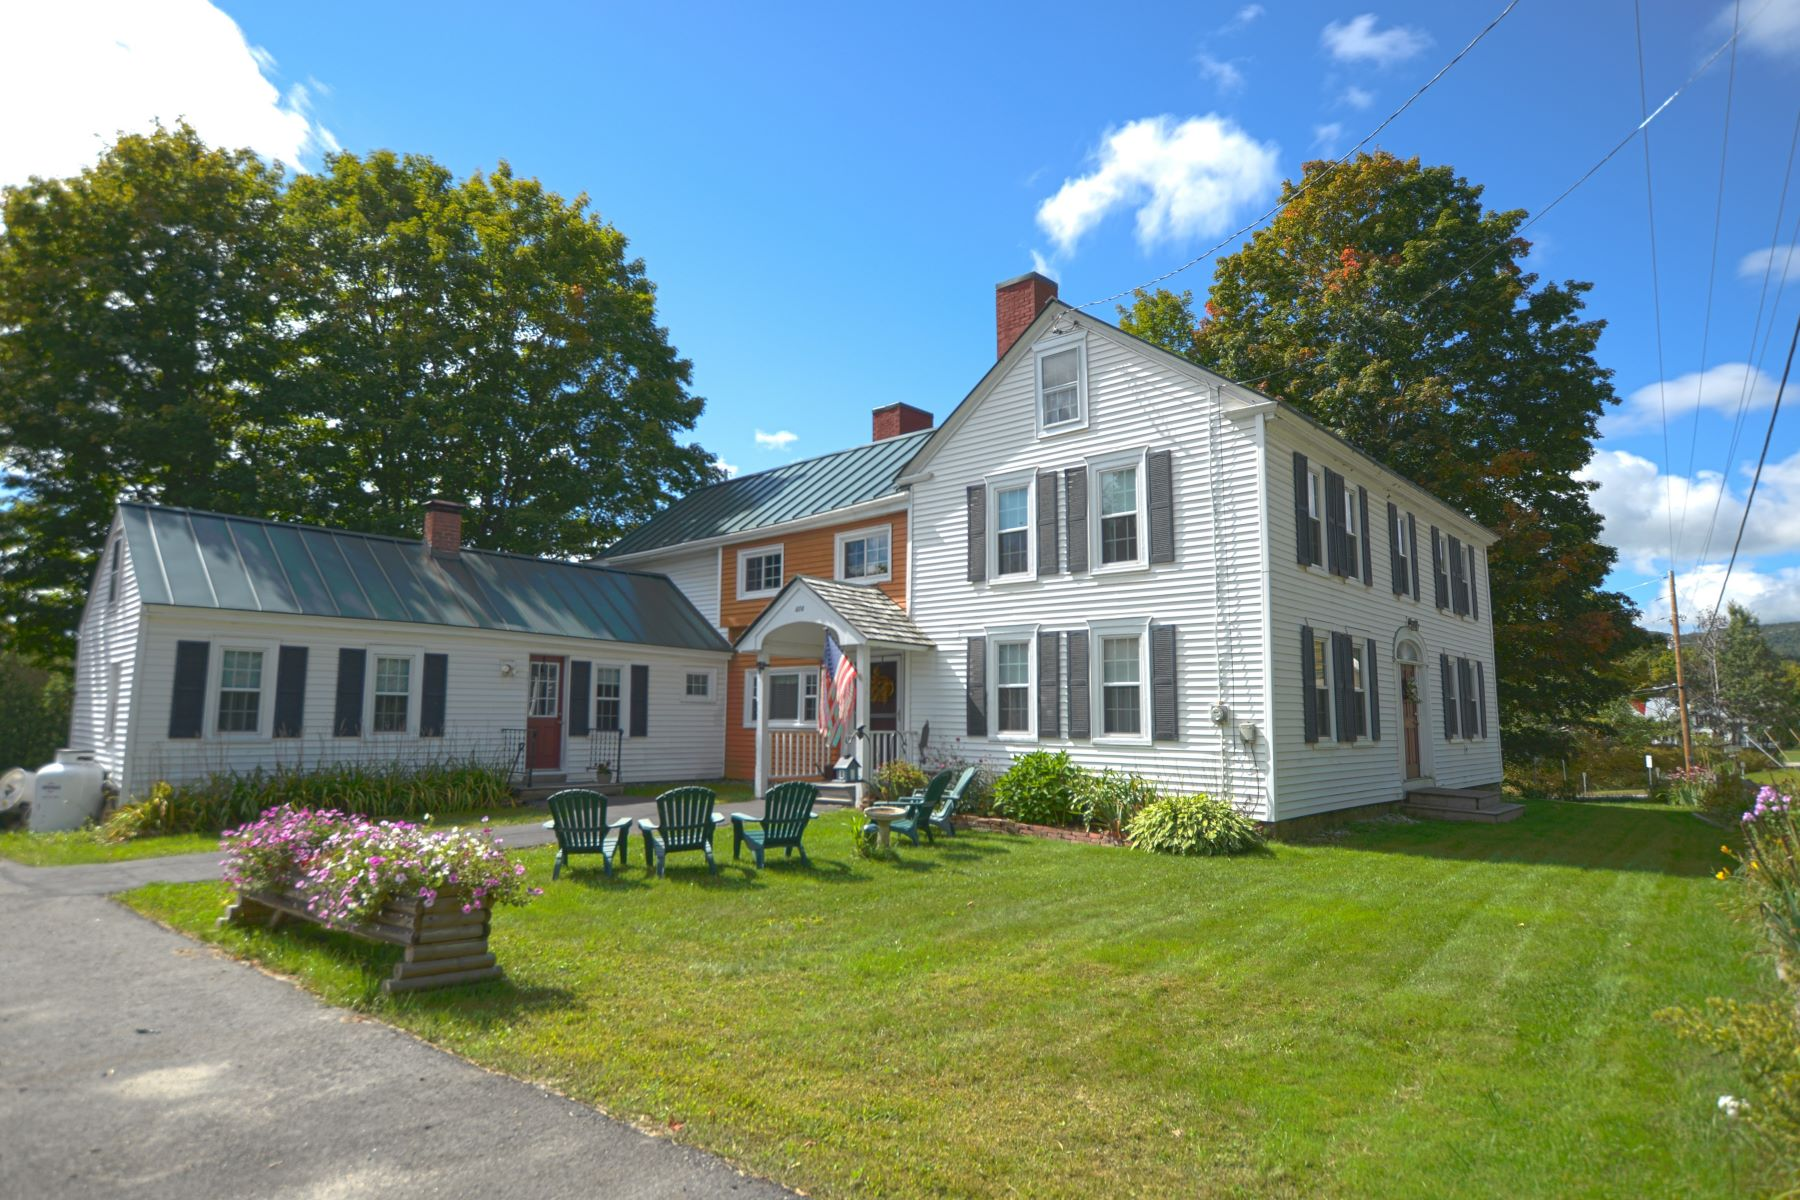 Single Family Home for Sale at Four Bedroom Colonial in West Topsham 474 Vt Route 25 Route Topsham, Vermont 05076 United States